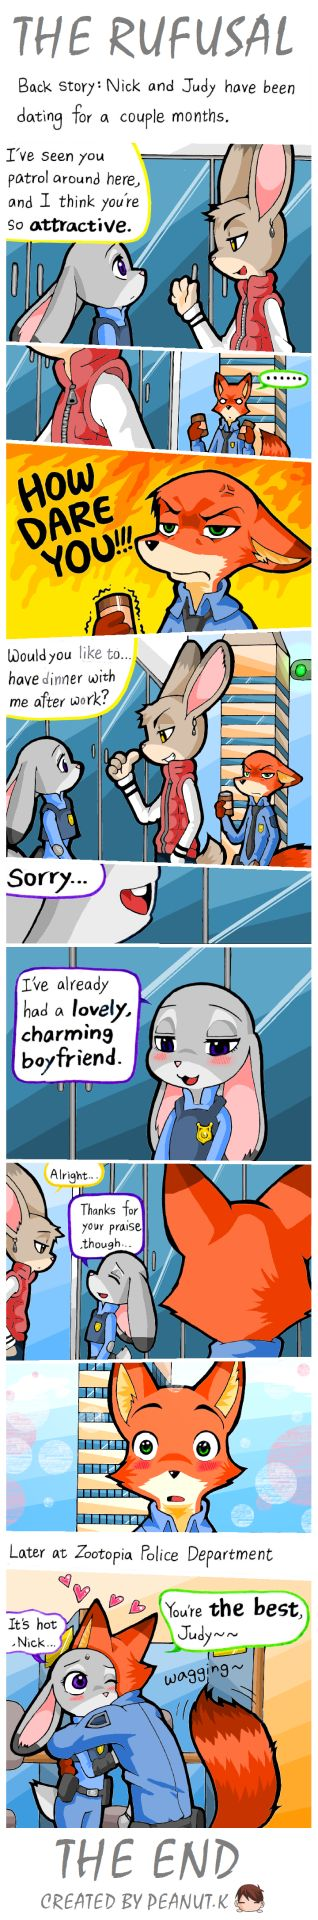 "peanut-k: "" NICK & JUDY SHORT COMIC~ THE REFUSAL Peanut.K: Chief Bogo, what's your opinion of flirting during work? Chief Bogo: Stop talking about that…Officer Hopps and Officer Wilde do that every day, and I just….(sign) """